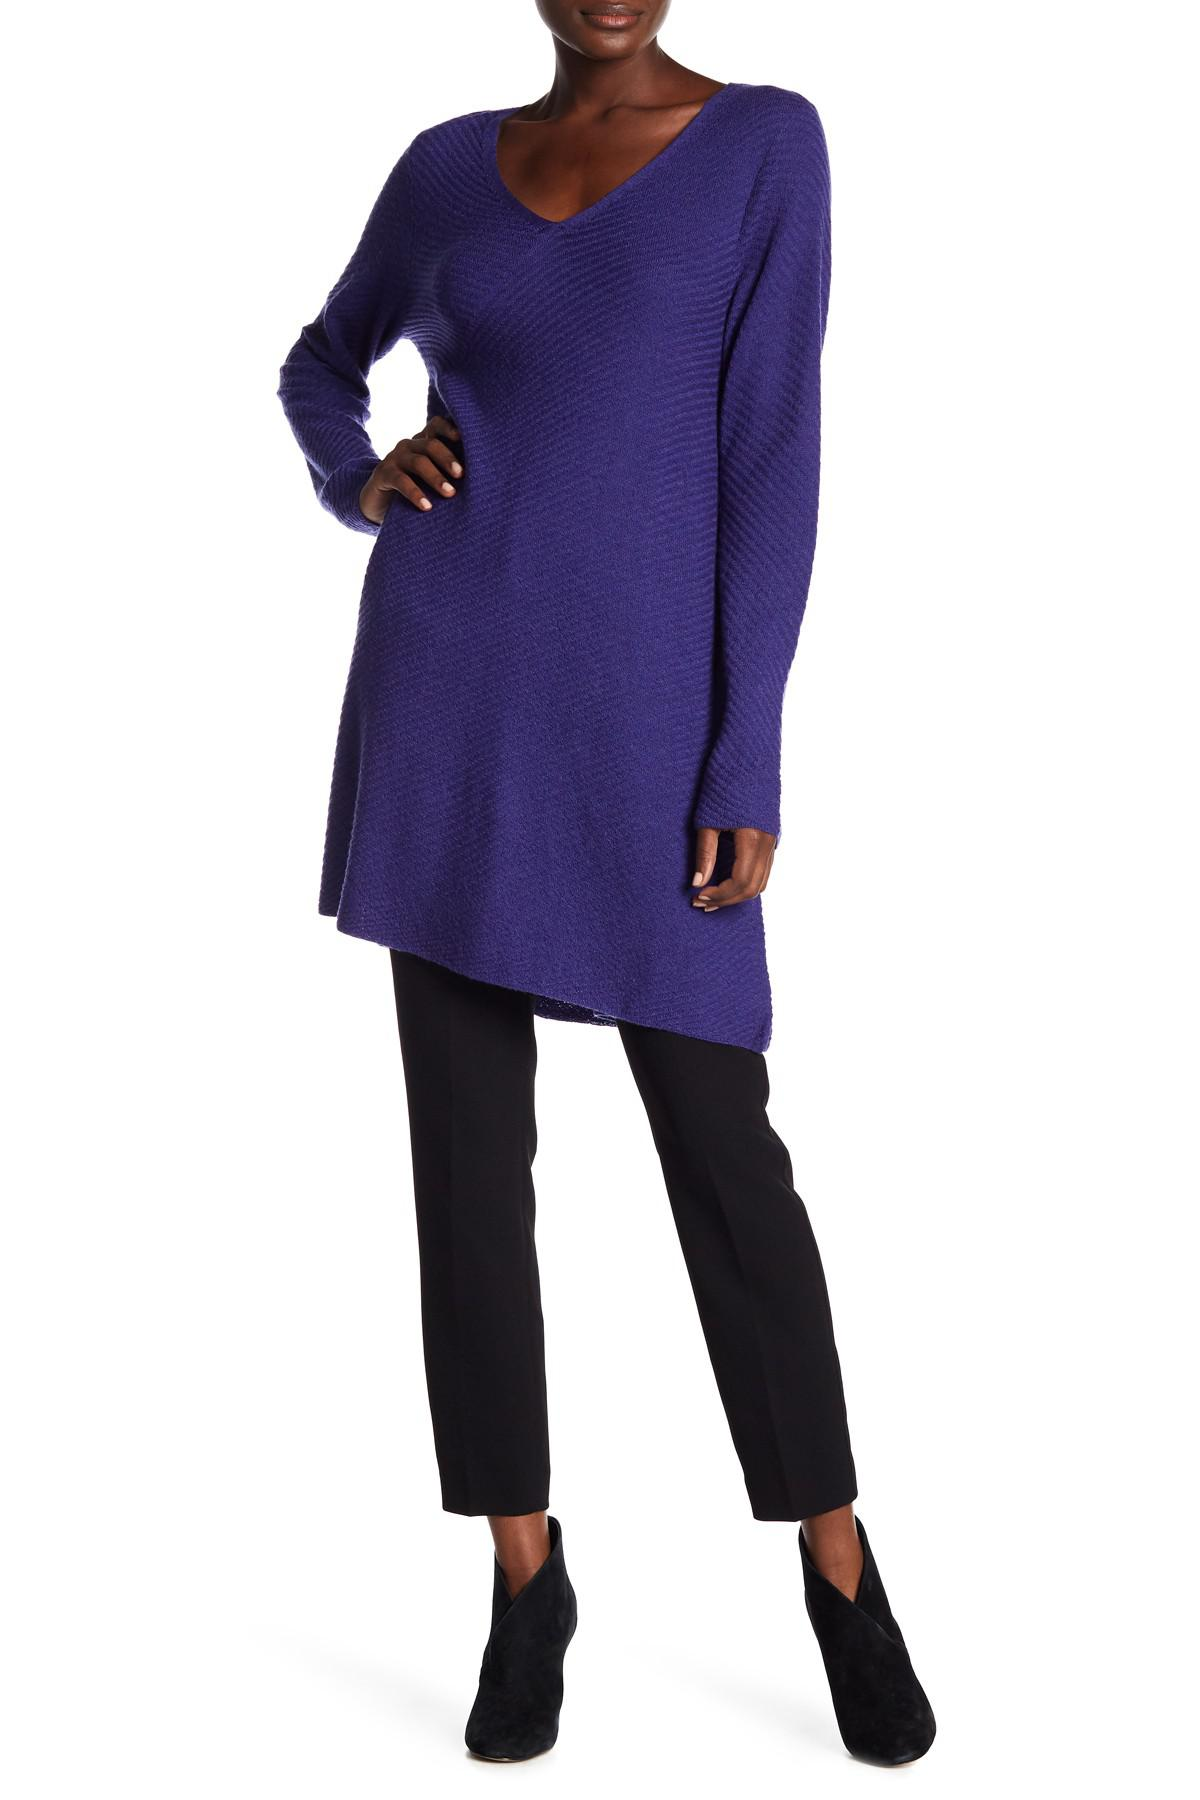 nordstrom pinterest seamed neck fisher bateau item rack and splurge shoulder drop wool pin fall merino sweater eileen